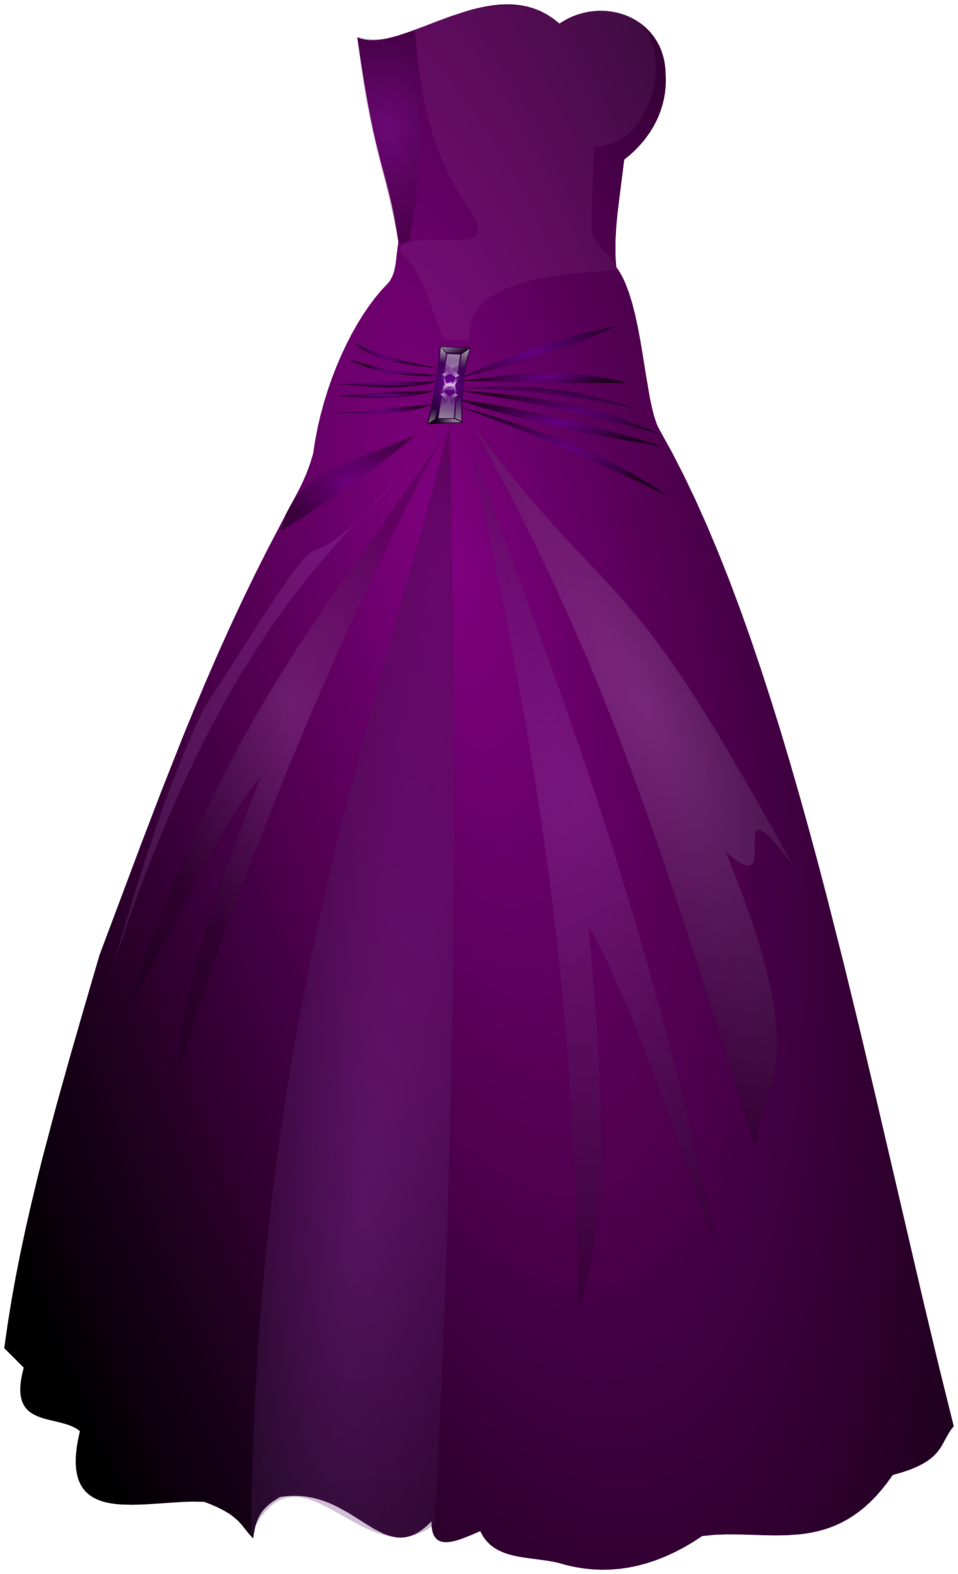 jpg transparent library Public domain clip art. Gown clipart violet dress